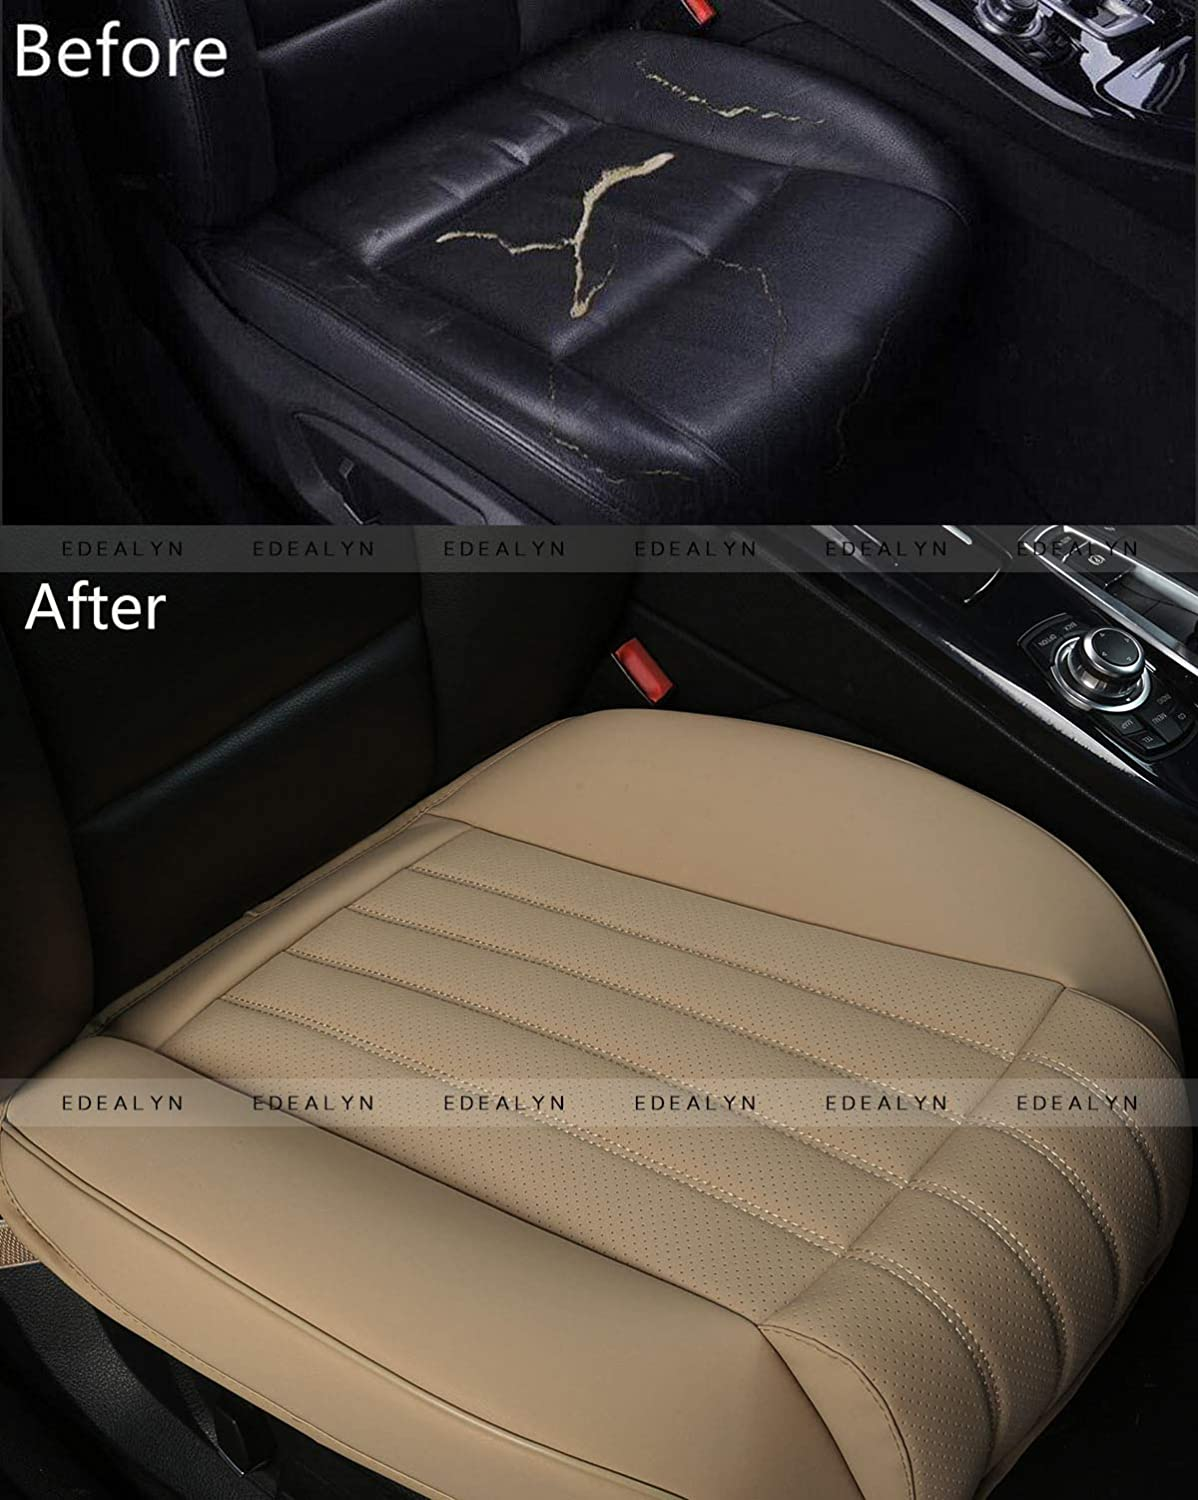 2 PCS Beige - no Charcoal EDEALYN 2PCS Driver and Passenger Seat Cover PU Leather Seat Covers Universal Car Seat Cover Front Seat Protector Fit Most Sedans /&Truck /&SUV